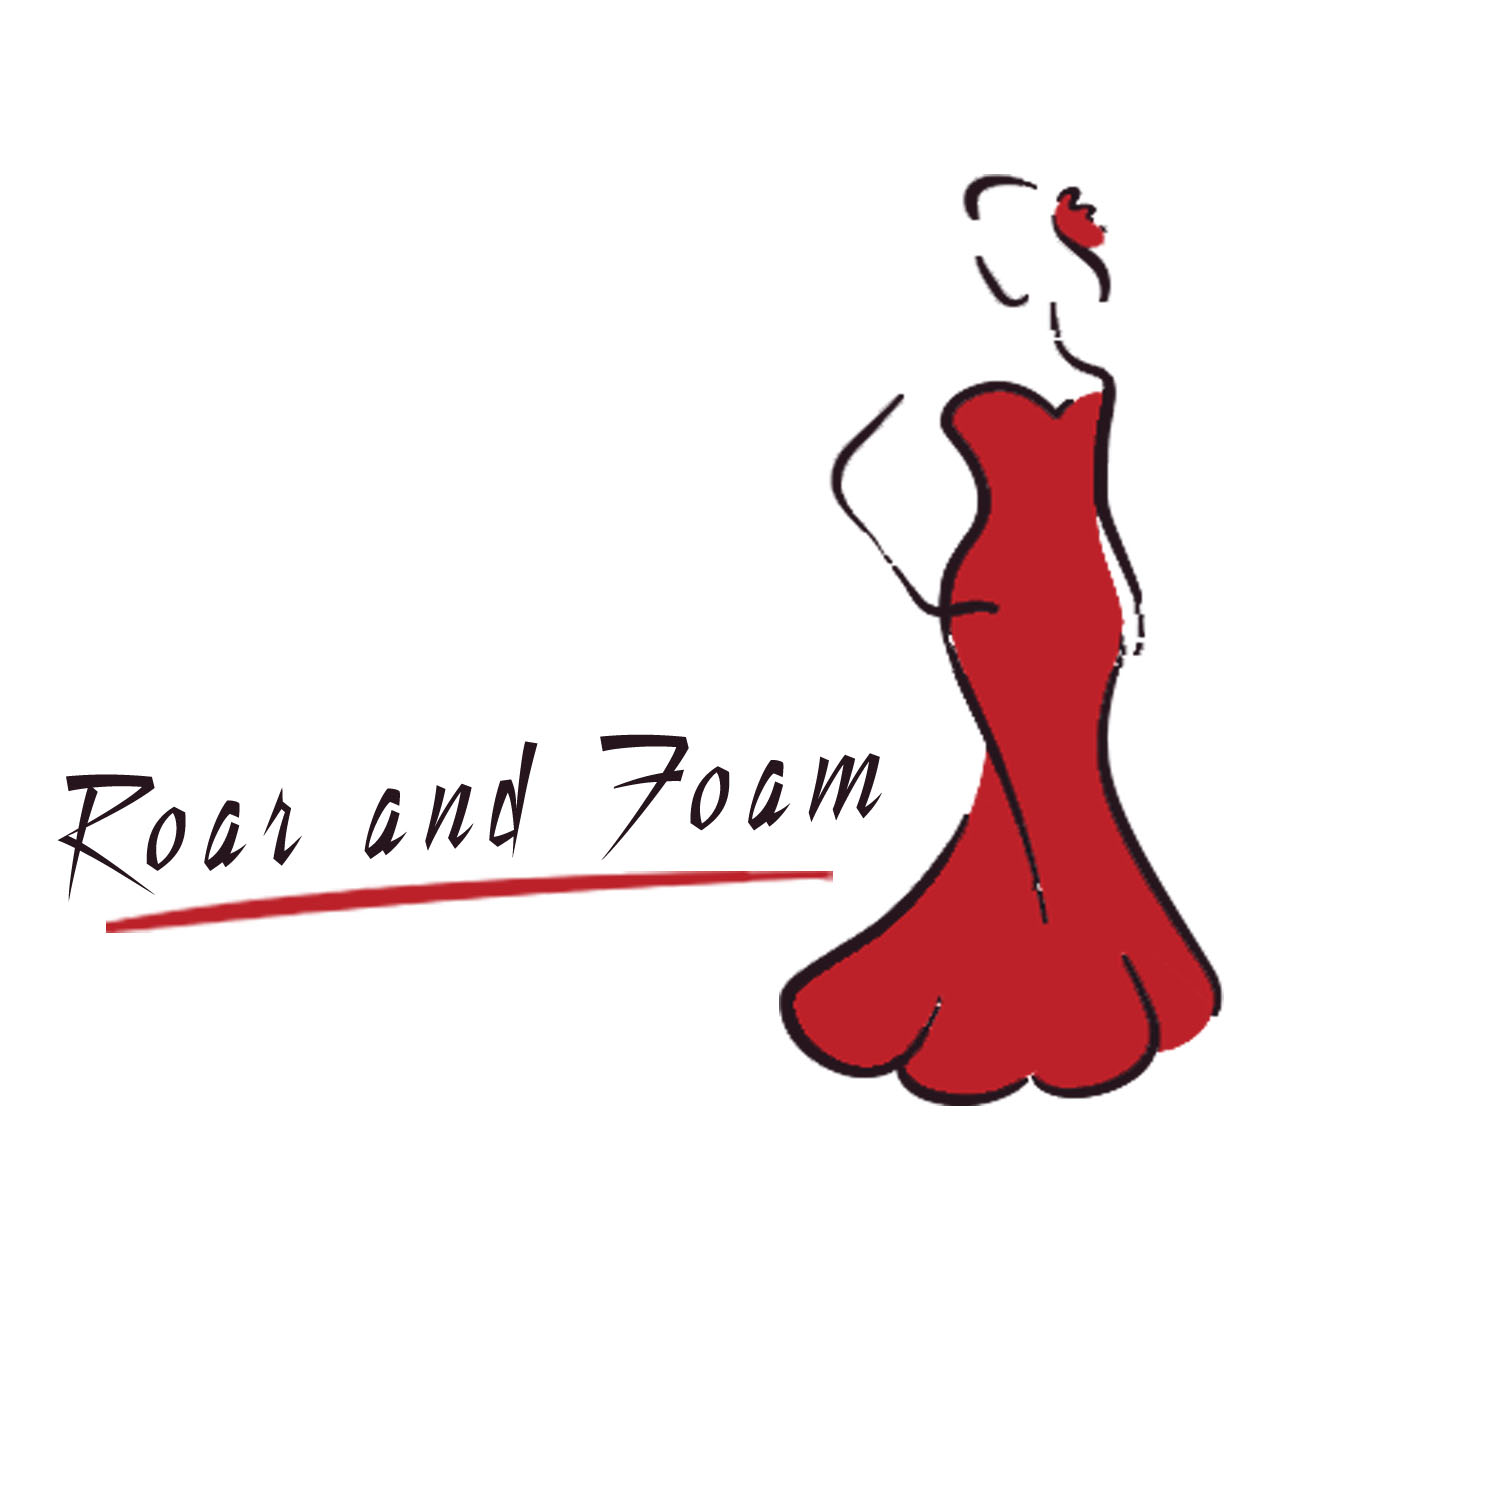 Feminine Elegant Womens Clothing Logo Design For Roar